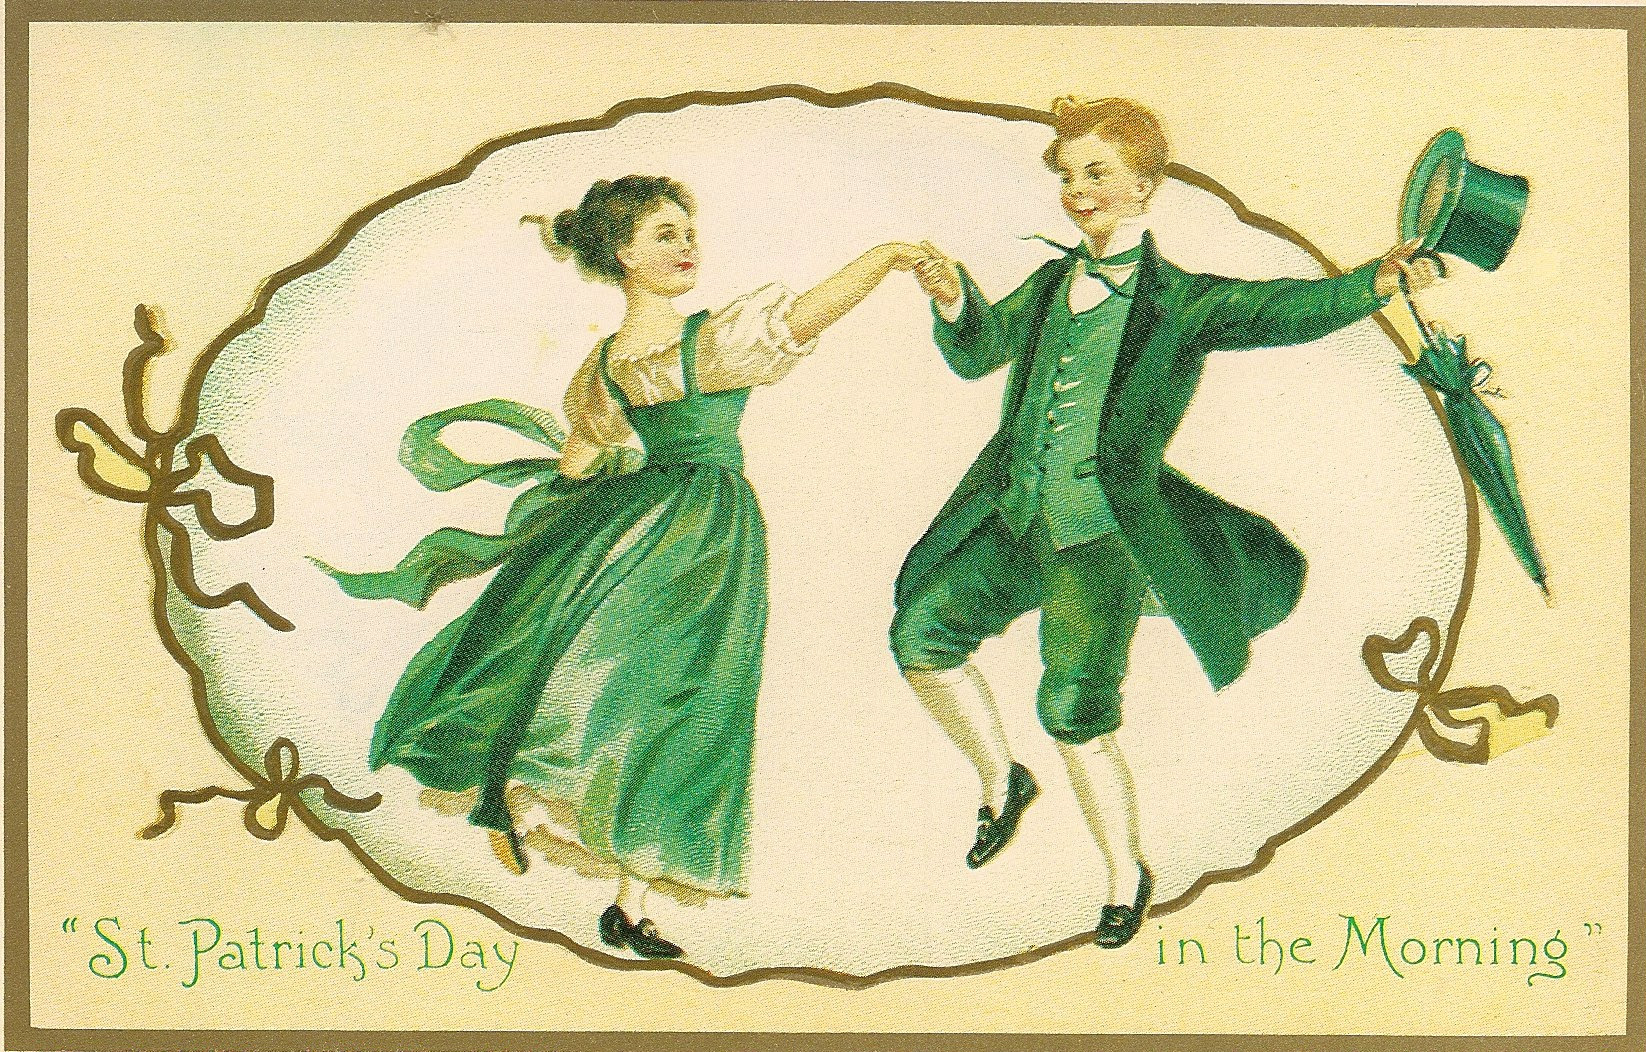 St. Patrick's Day Postcard